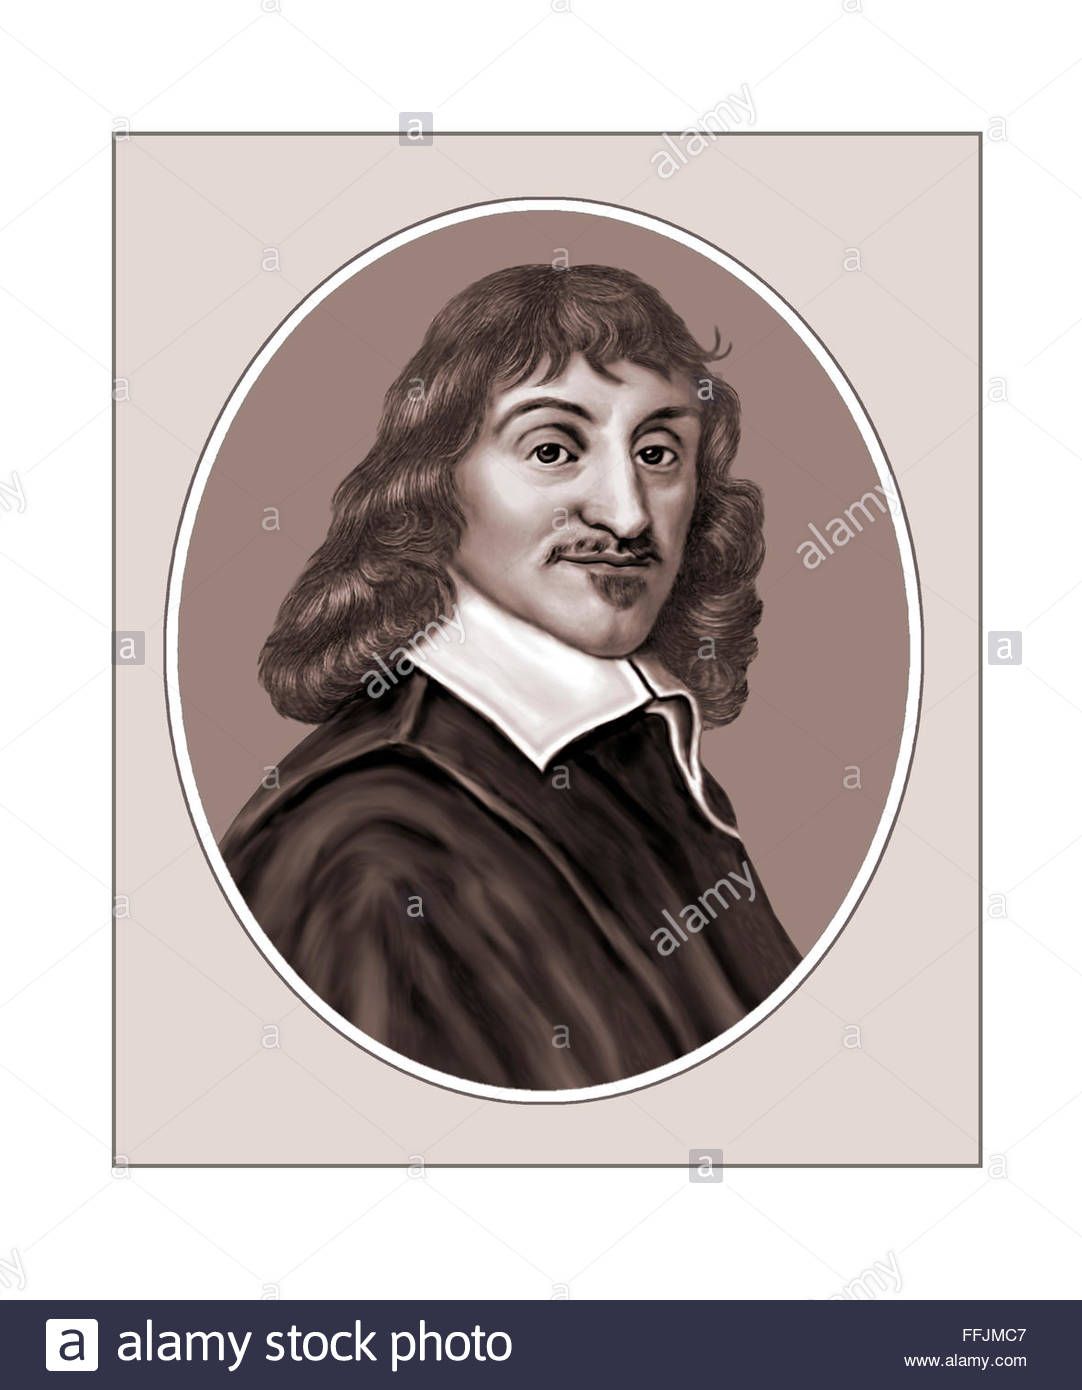 Rene Descartes, Philosopher, Portrait Stock Photo